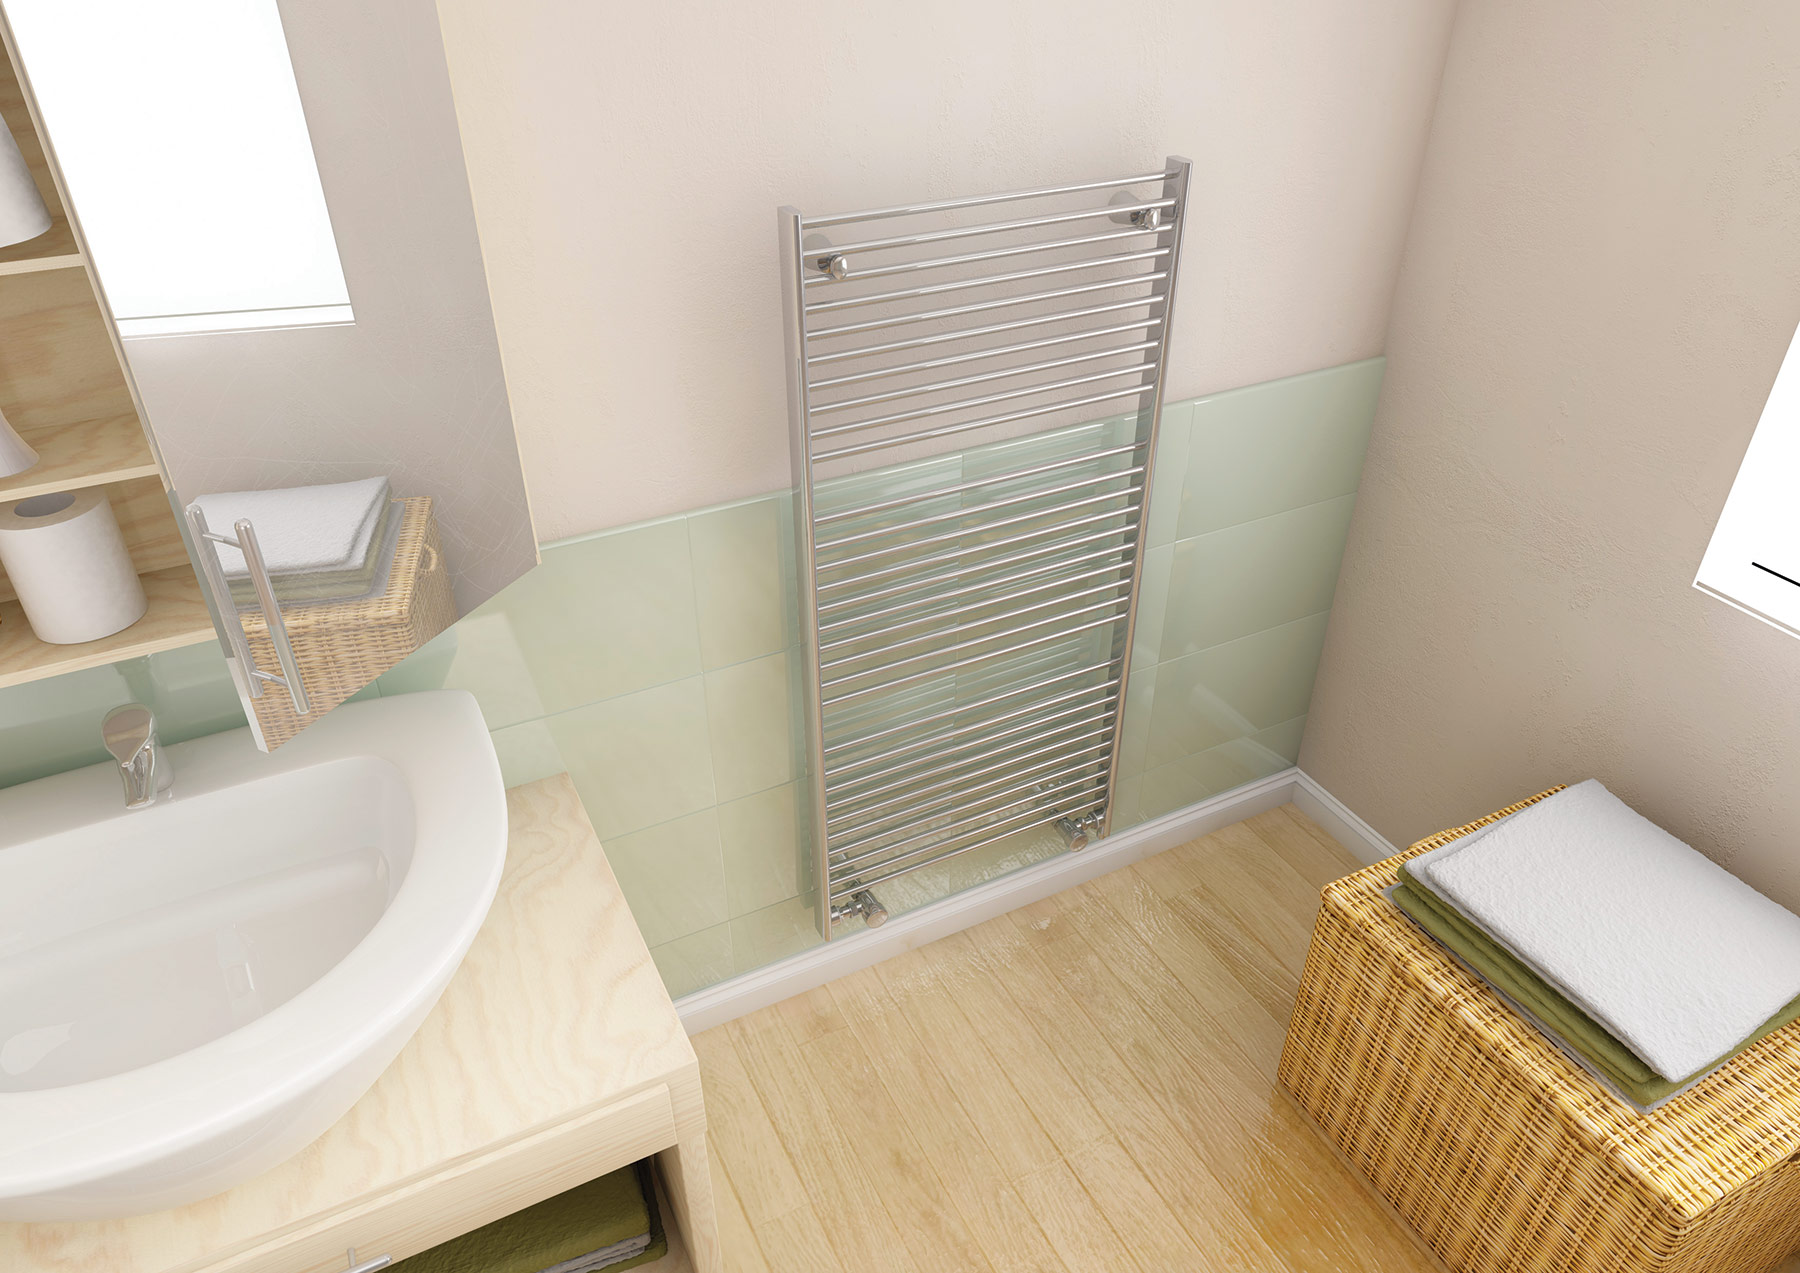 Esprit Radiators From Stelrad